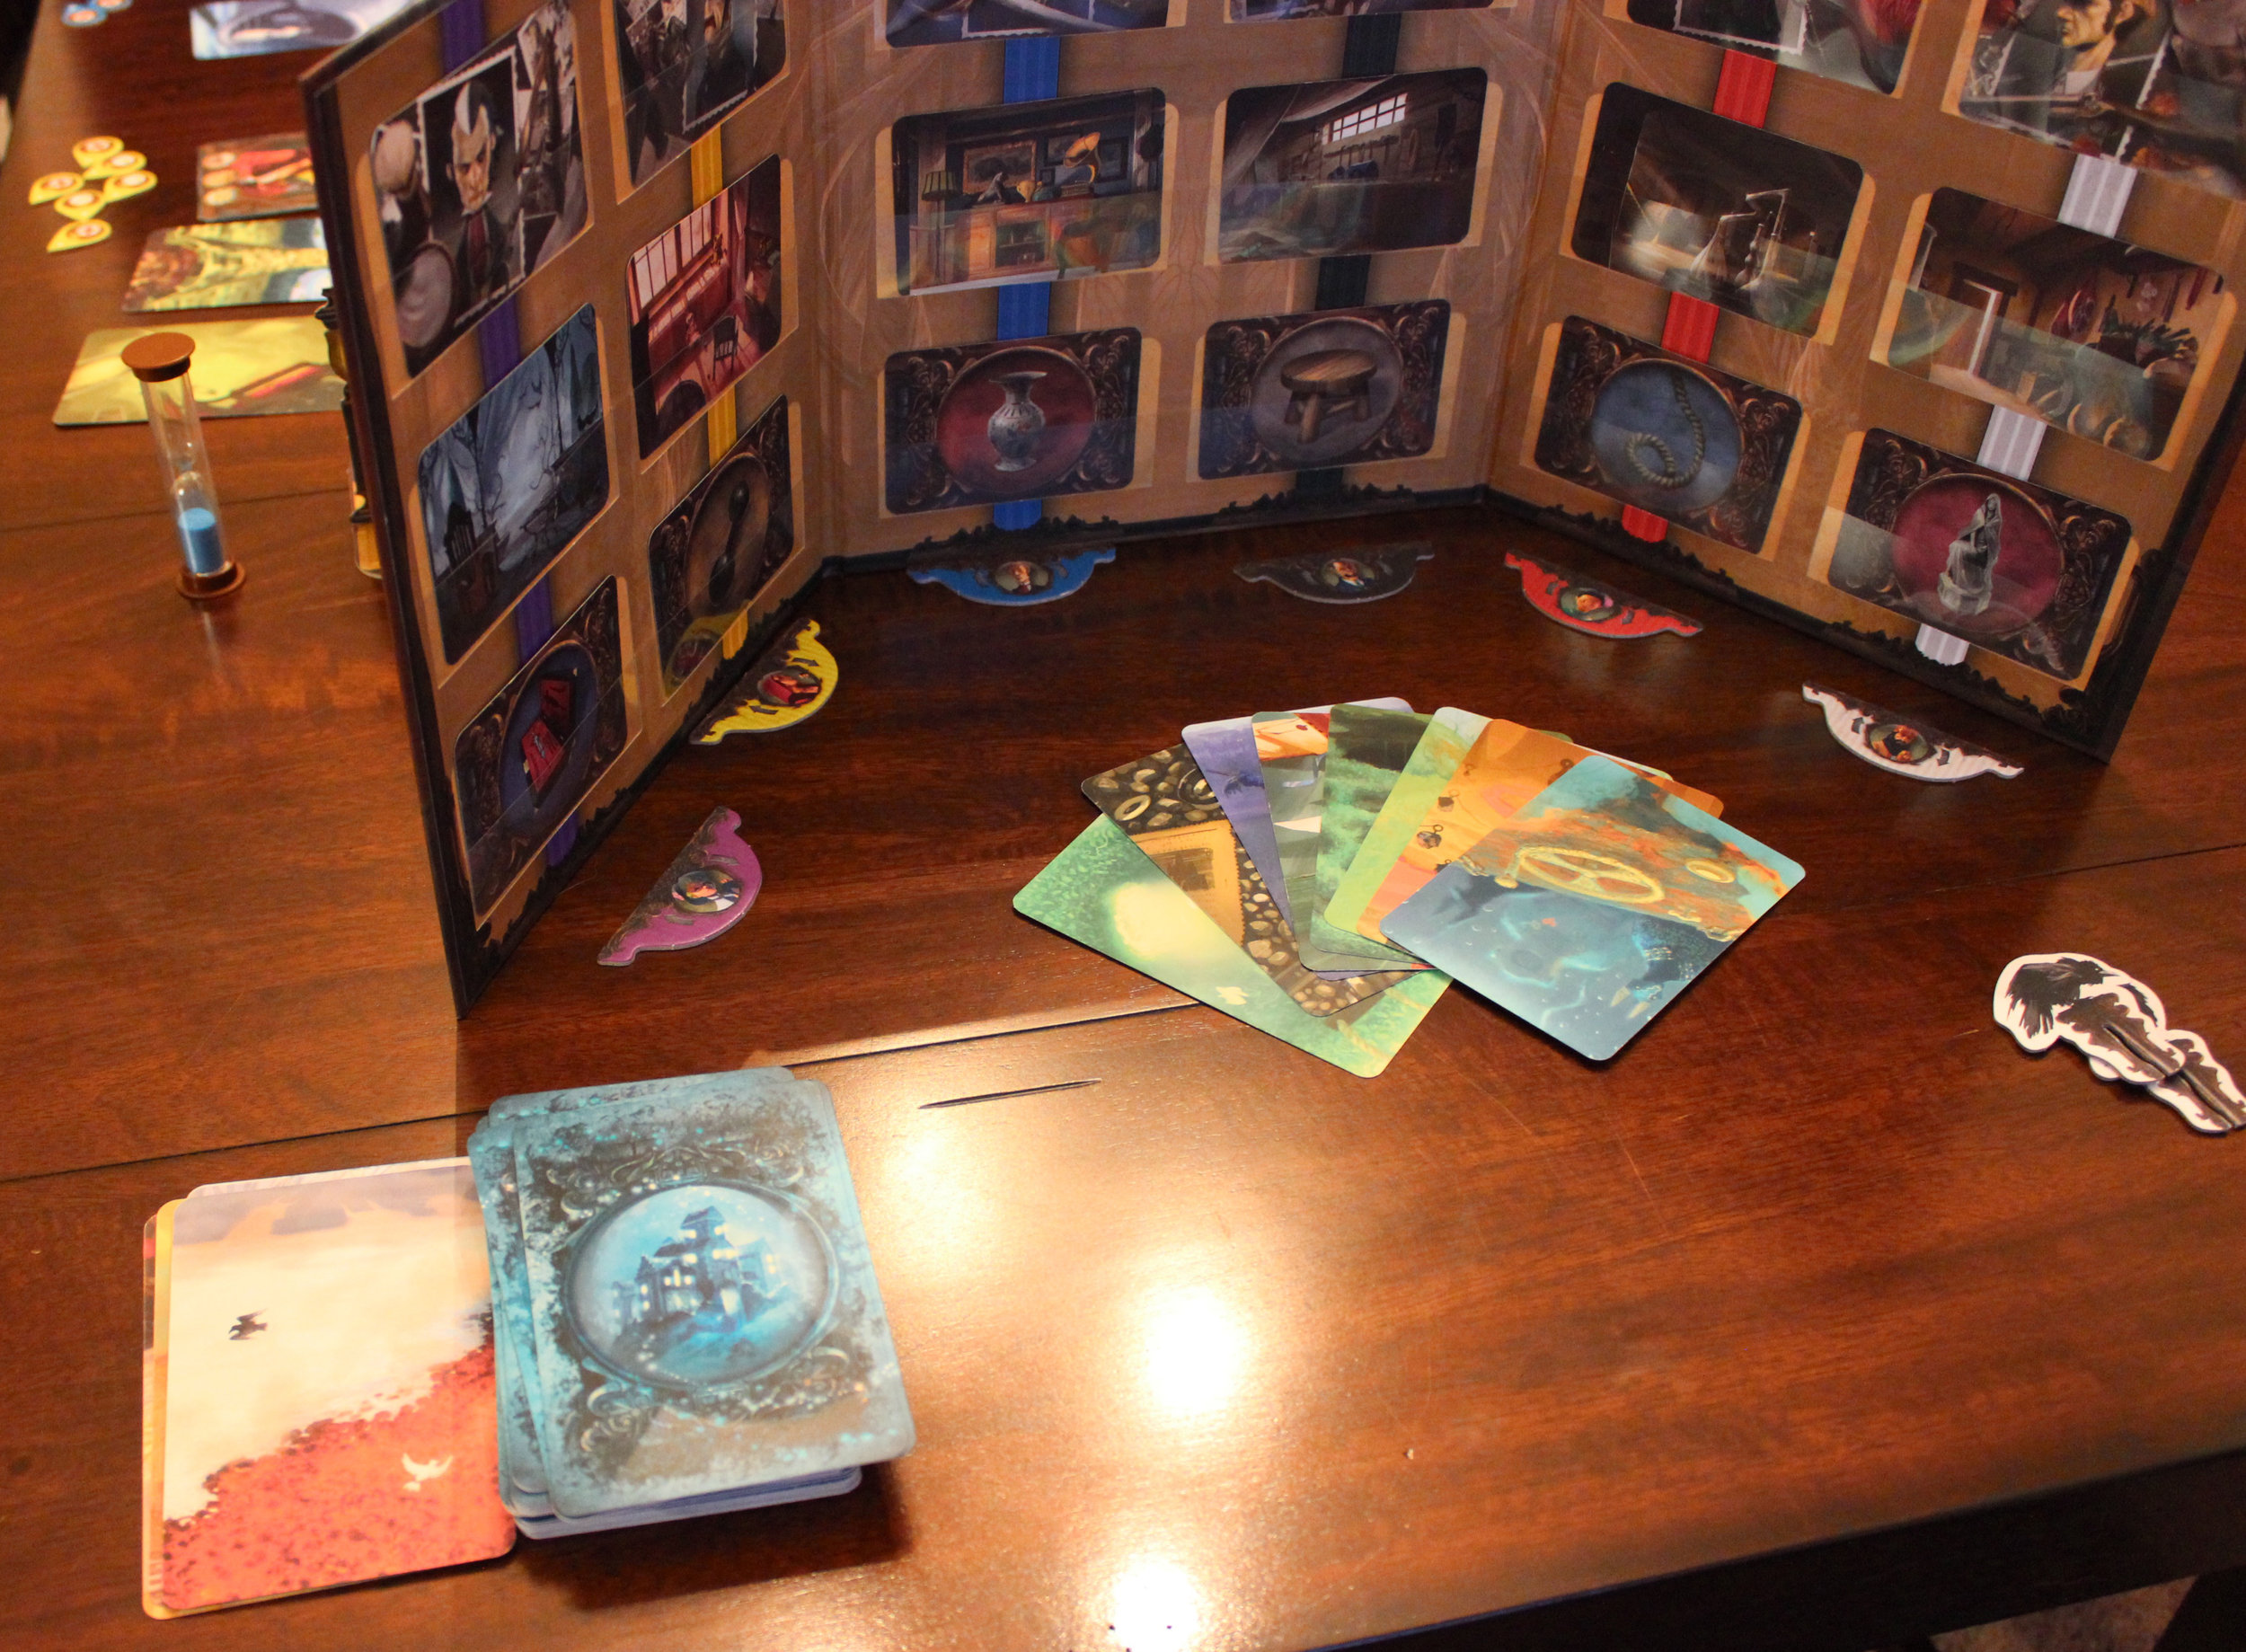 As the game continues, the ghost will run through cards in the deck.